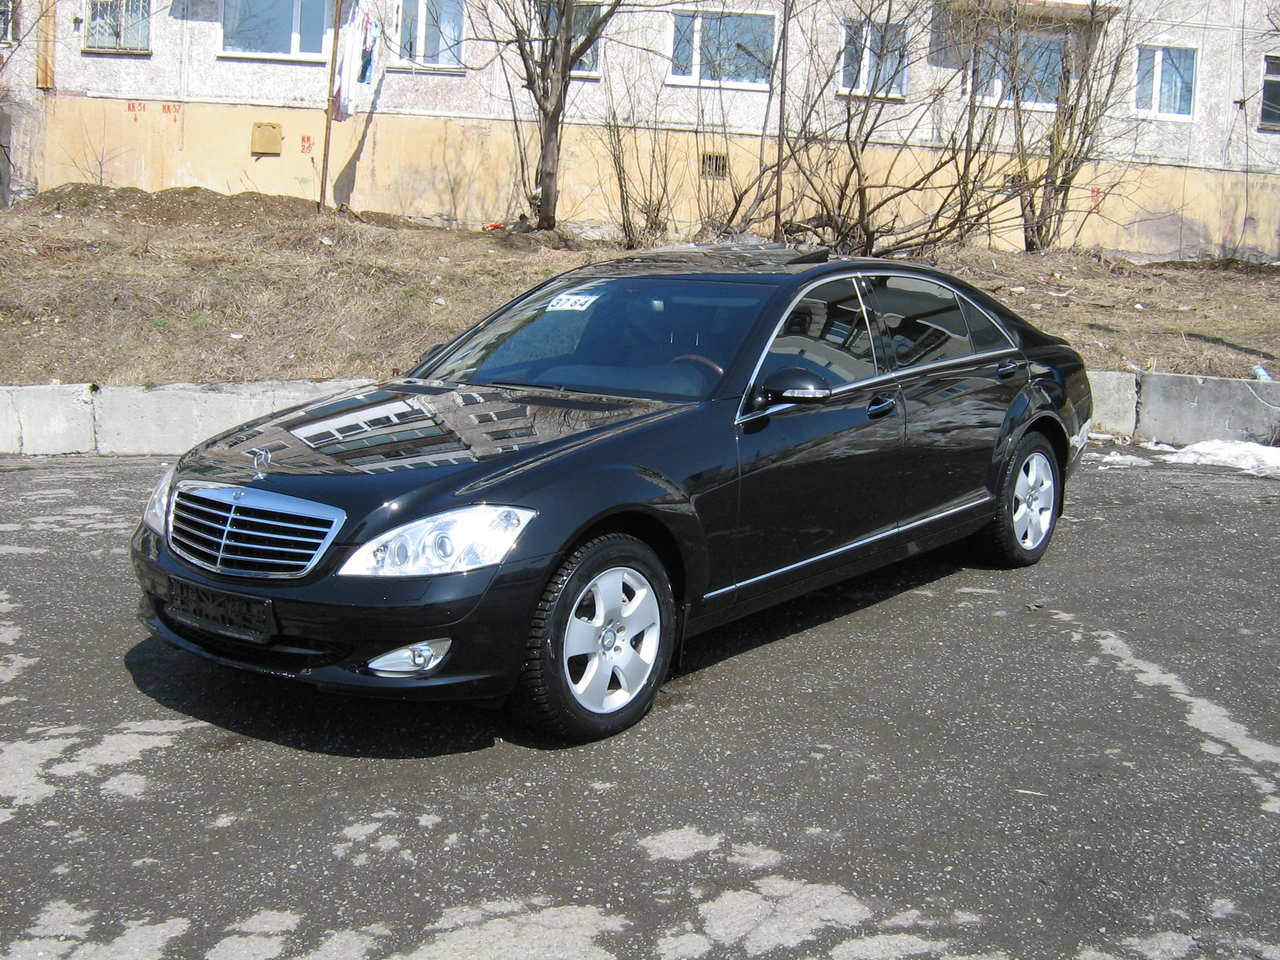 Used 2008 mercedes benz s class photos 5500cc gasoline for Mercedes benz 2008 s550 for sale